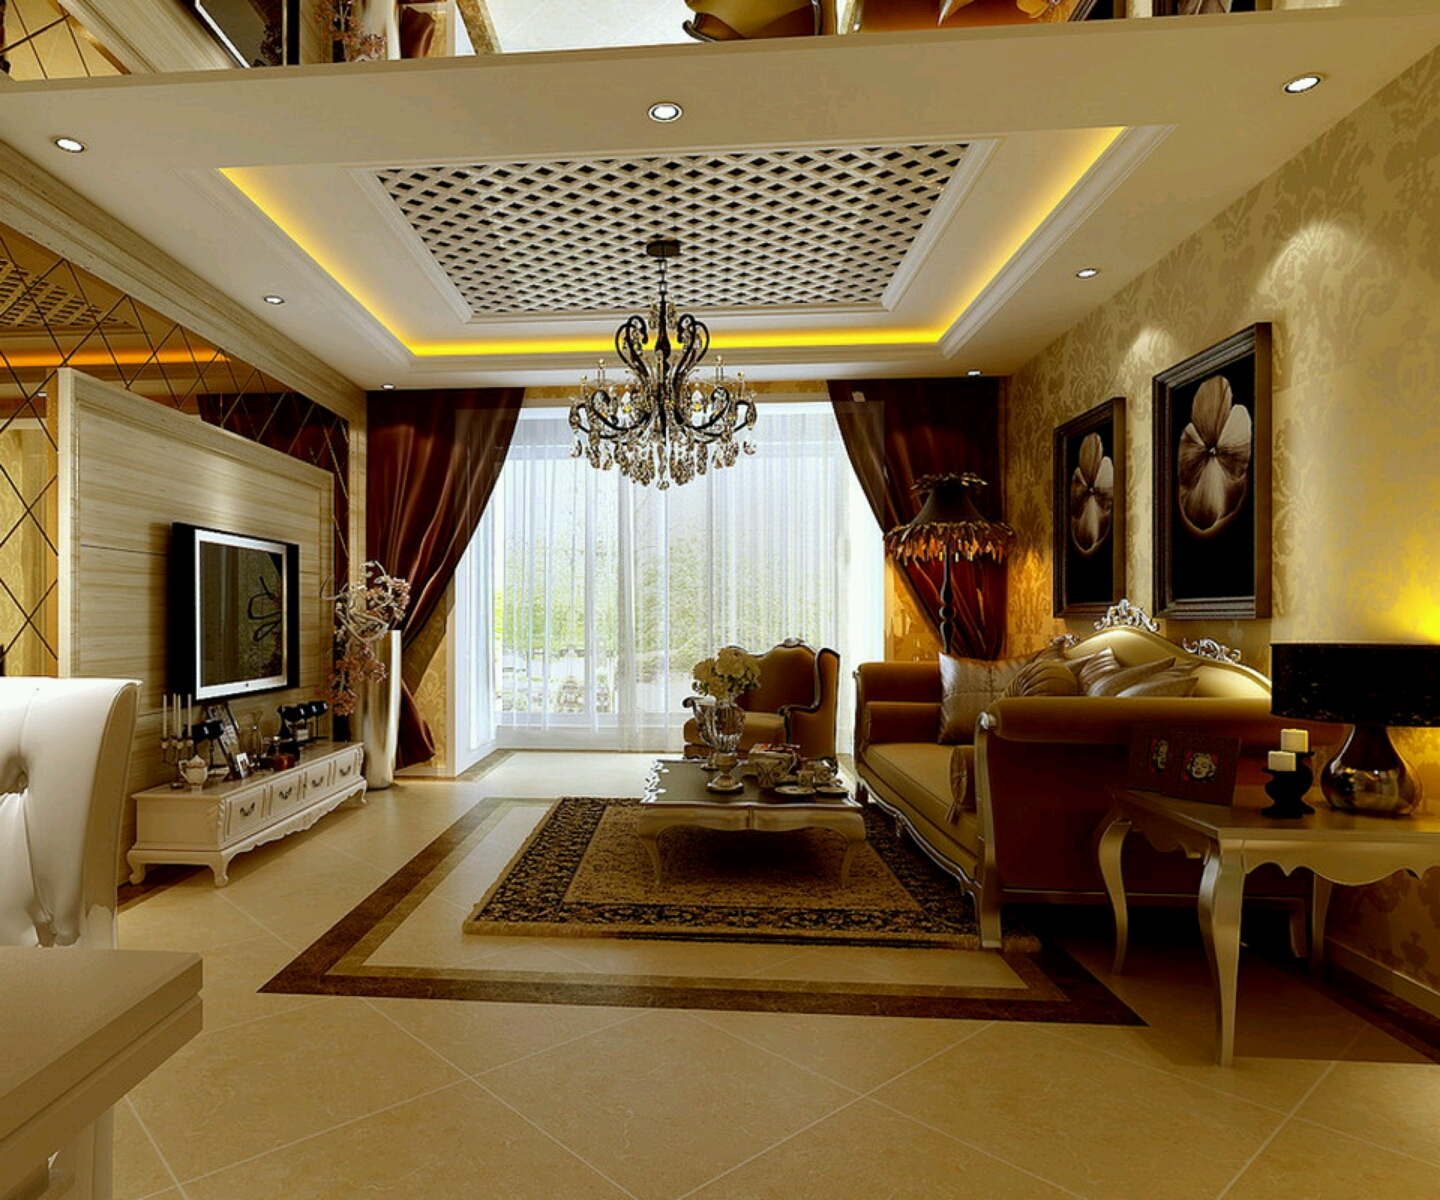 New home designs latest luxury homes interior decoration living room designs ideas Interior design ideas luxury homes